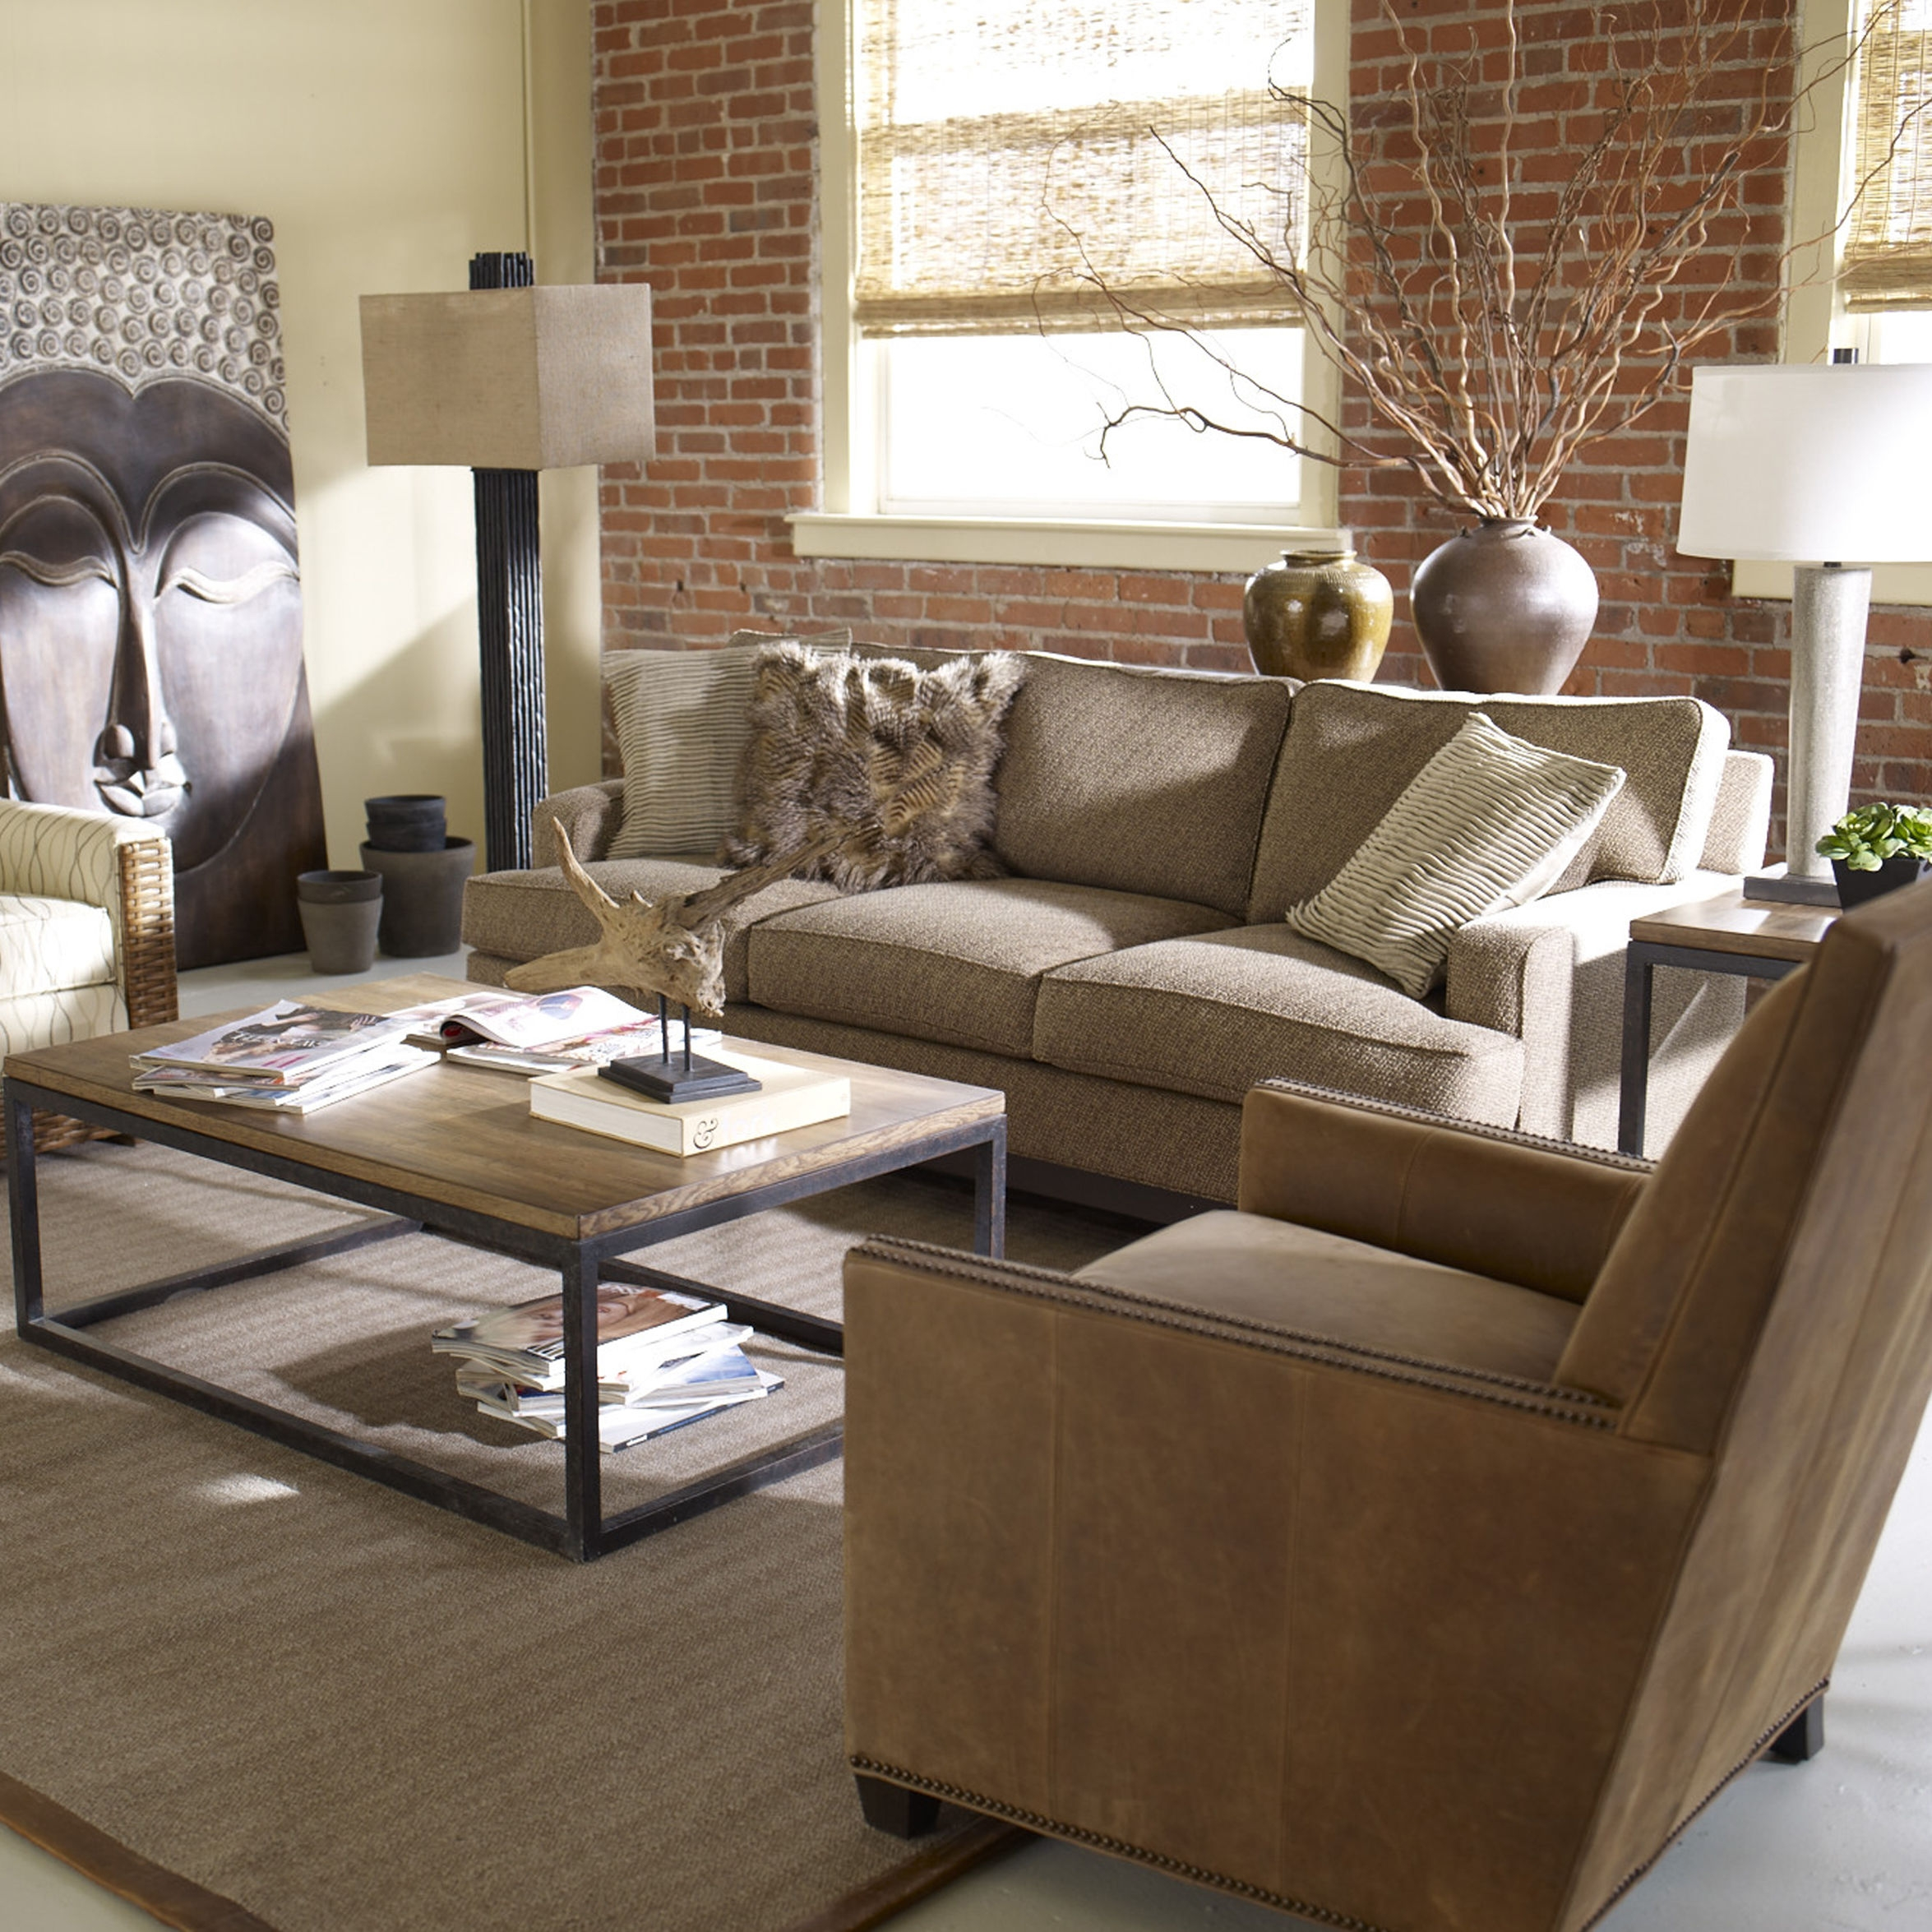 New Cozy Sectional Sofas 58 About Remodel Sofas And Couches Ideas Within Cozy Sectional Sofas (Image 12 of 15)